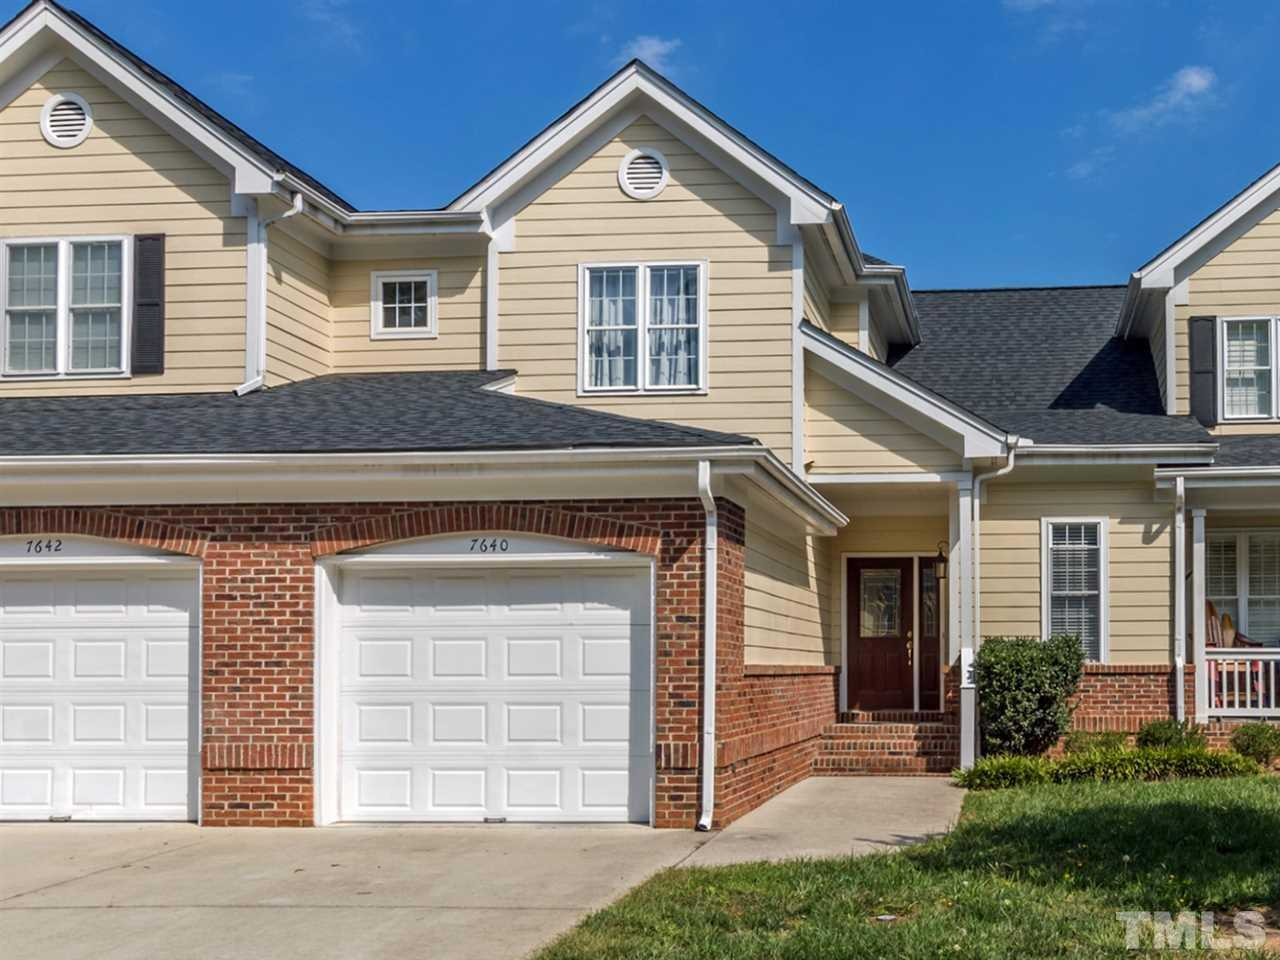 $218,900 - 3Br/3Ba -  for Sale in Umstead Village, Raleigh